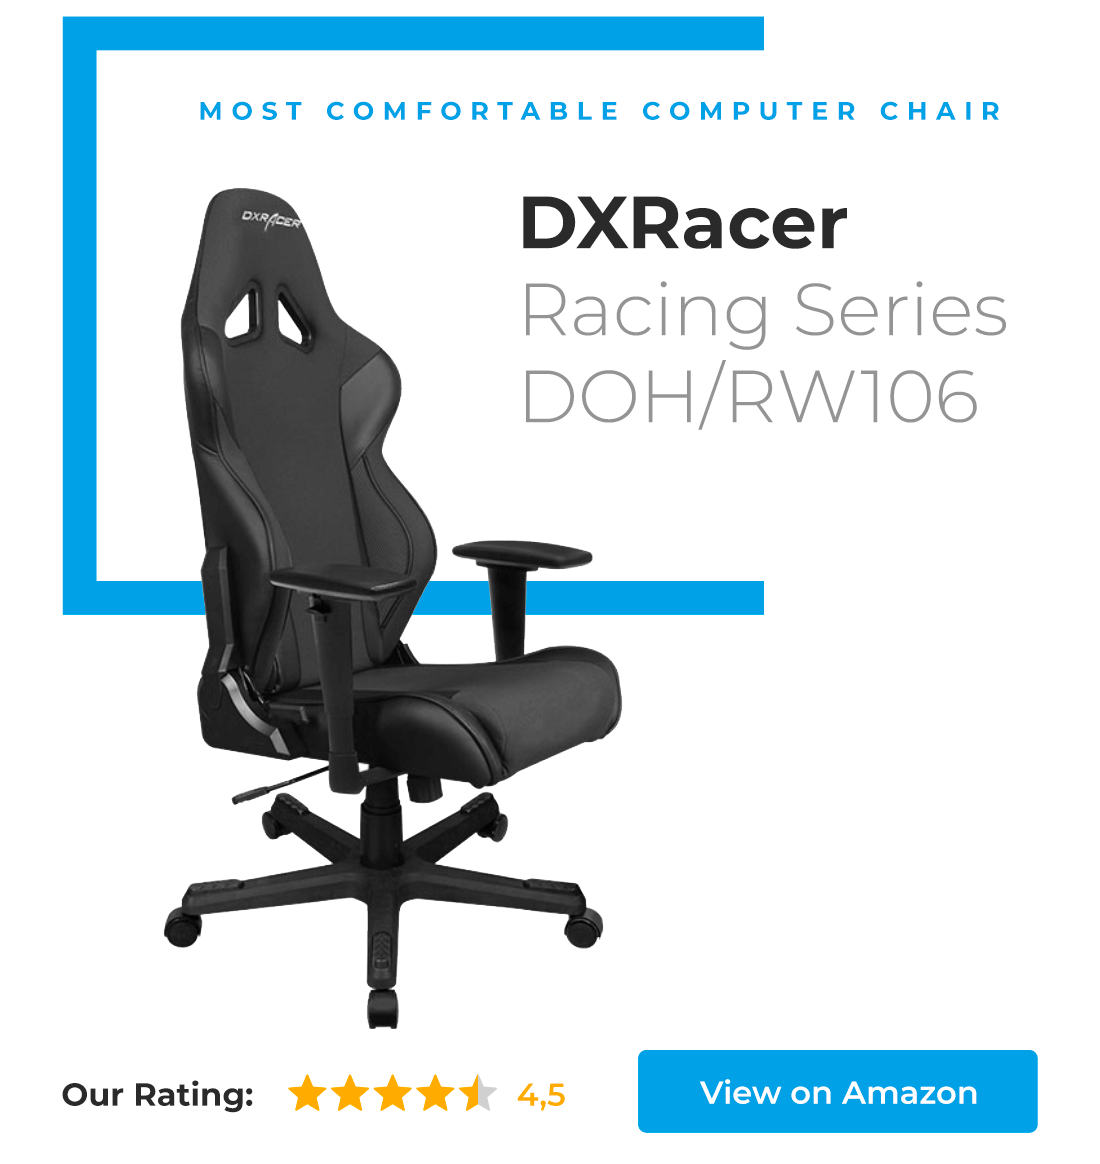 most comfortable computer chair. Most Comfortable Computer Chair Award Is Going To DXRacer Racing Series - Great For Gamers